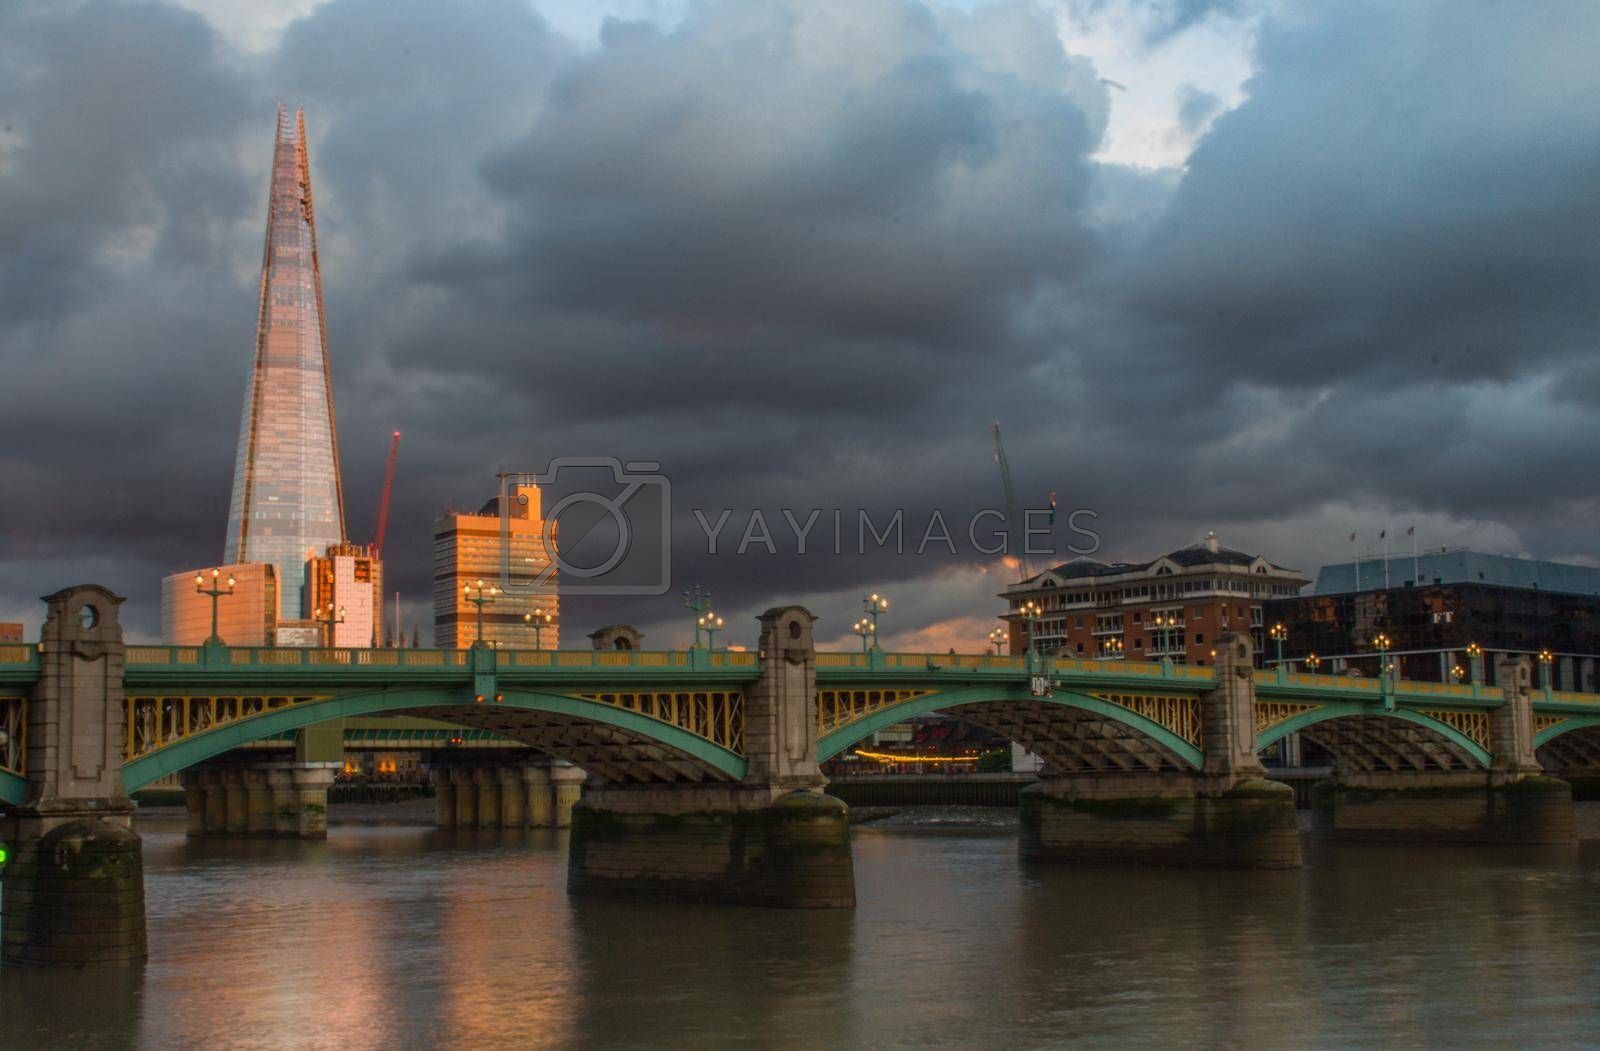 Westminster Bridge and the Shard at sunset and colorful dusk sky.